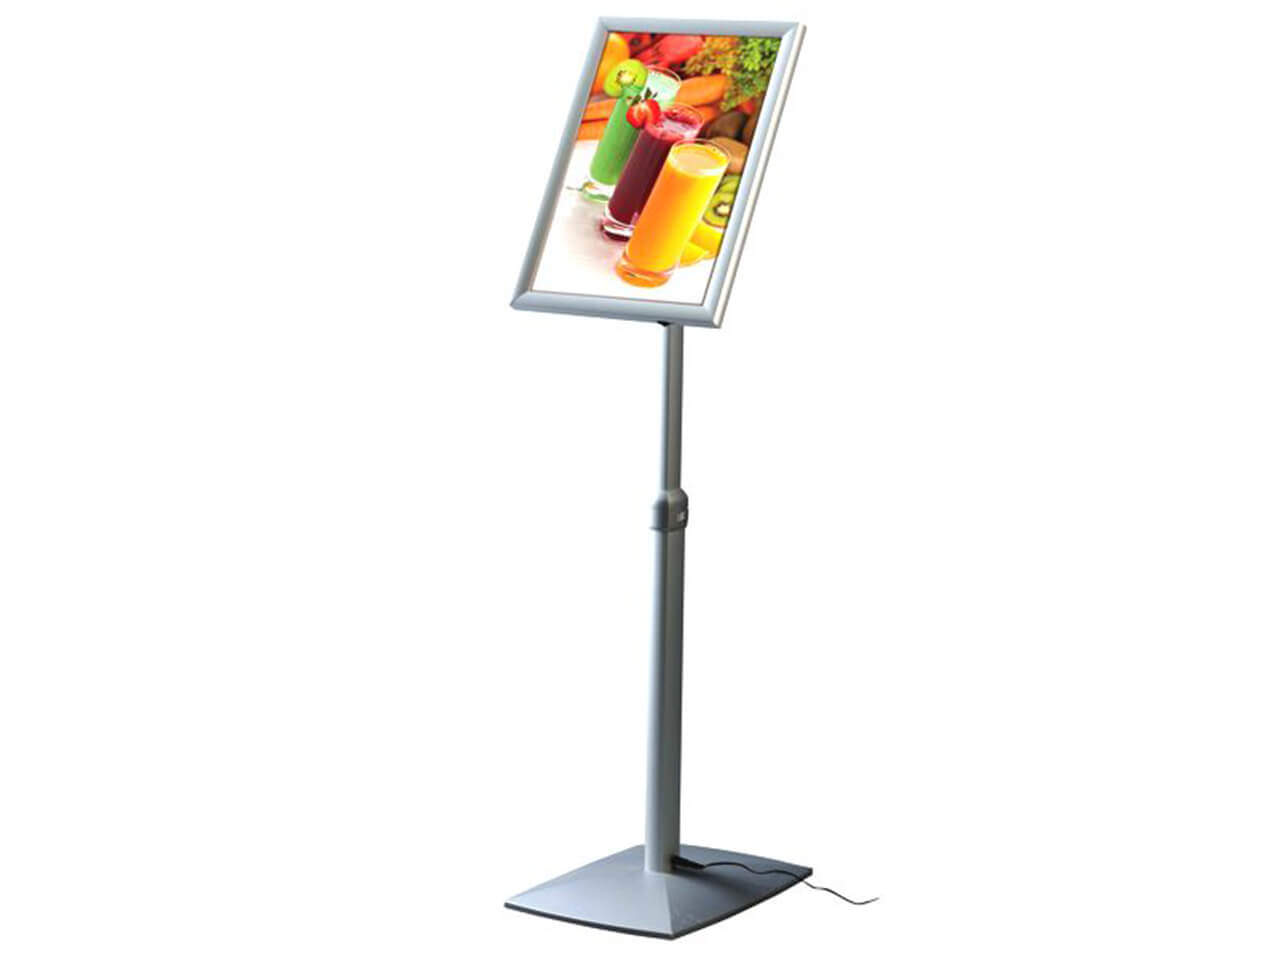 Info-LED-Menuestaender-Infostaender-Display-540